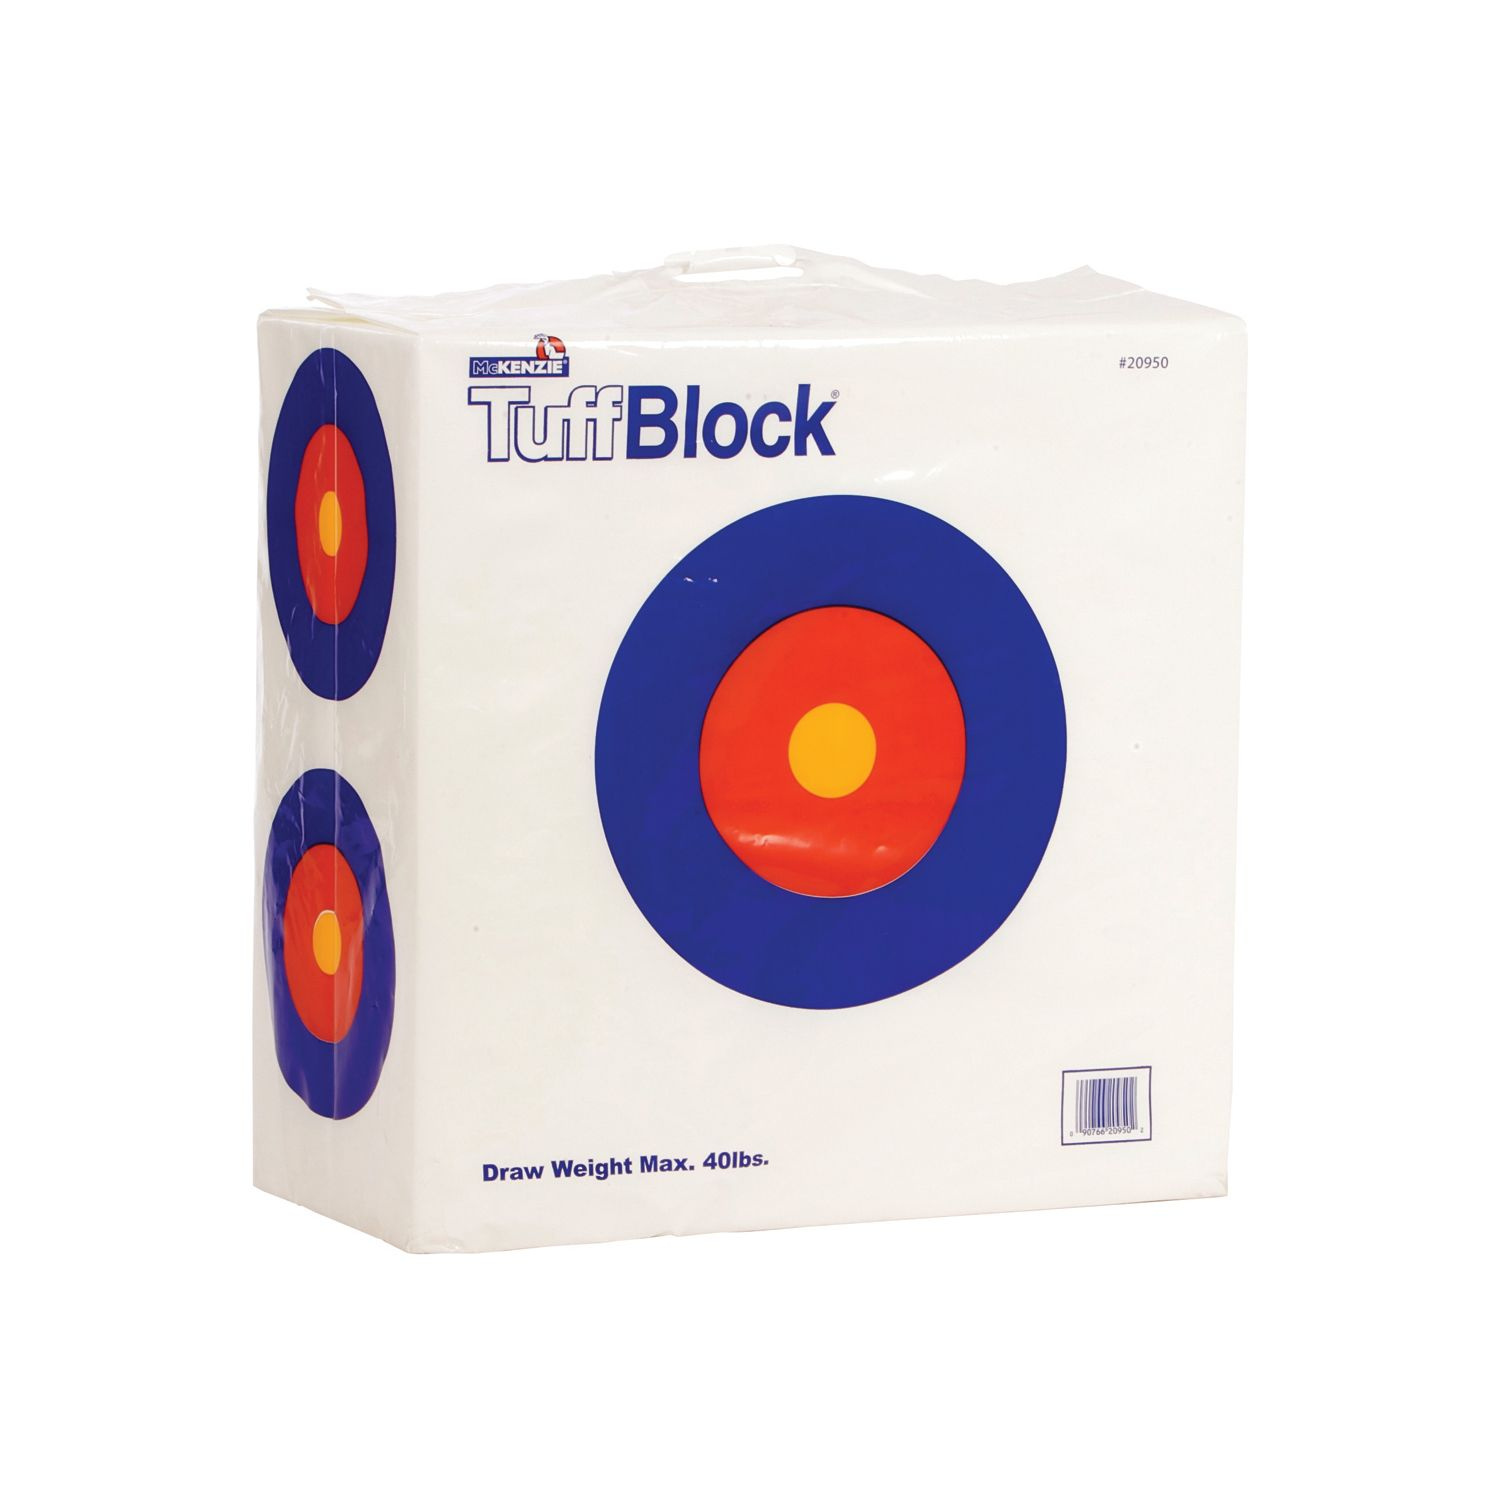 Archery targets for sale dicks sporting goods product image delta mckenzie tuffblock block archery target nvjuhfo Choice Image